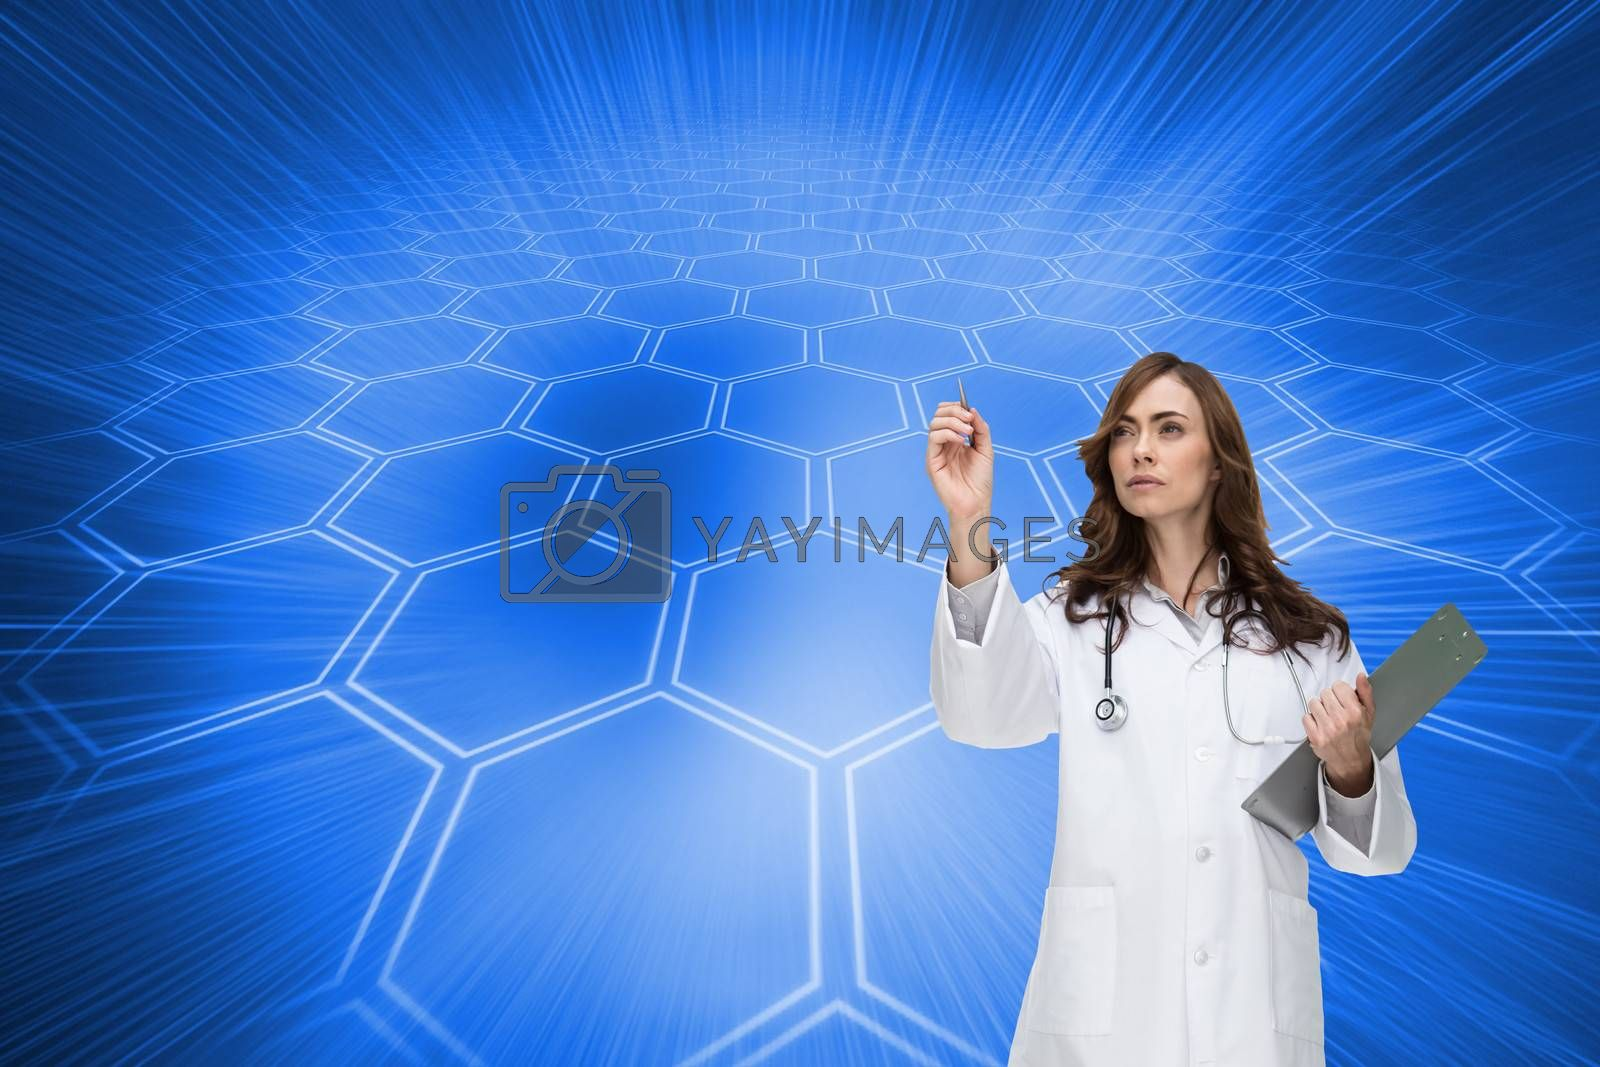 Composite image of stern brunette doctor pointing